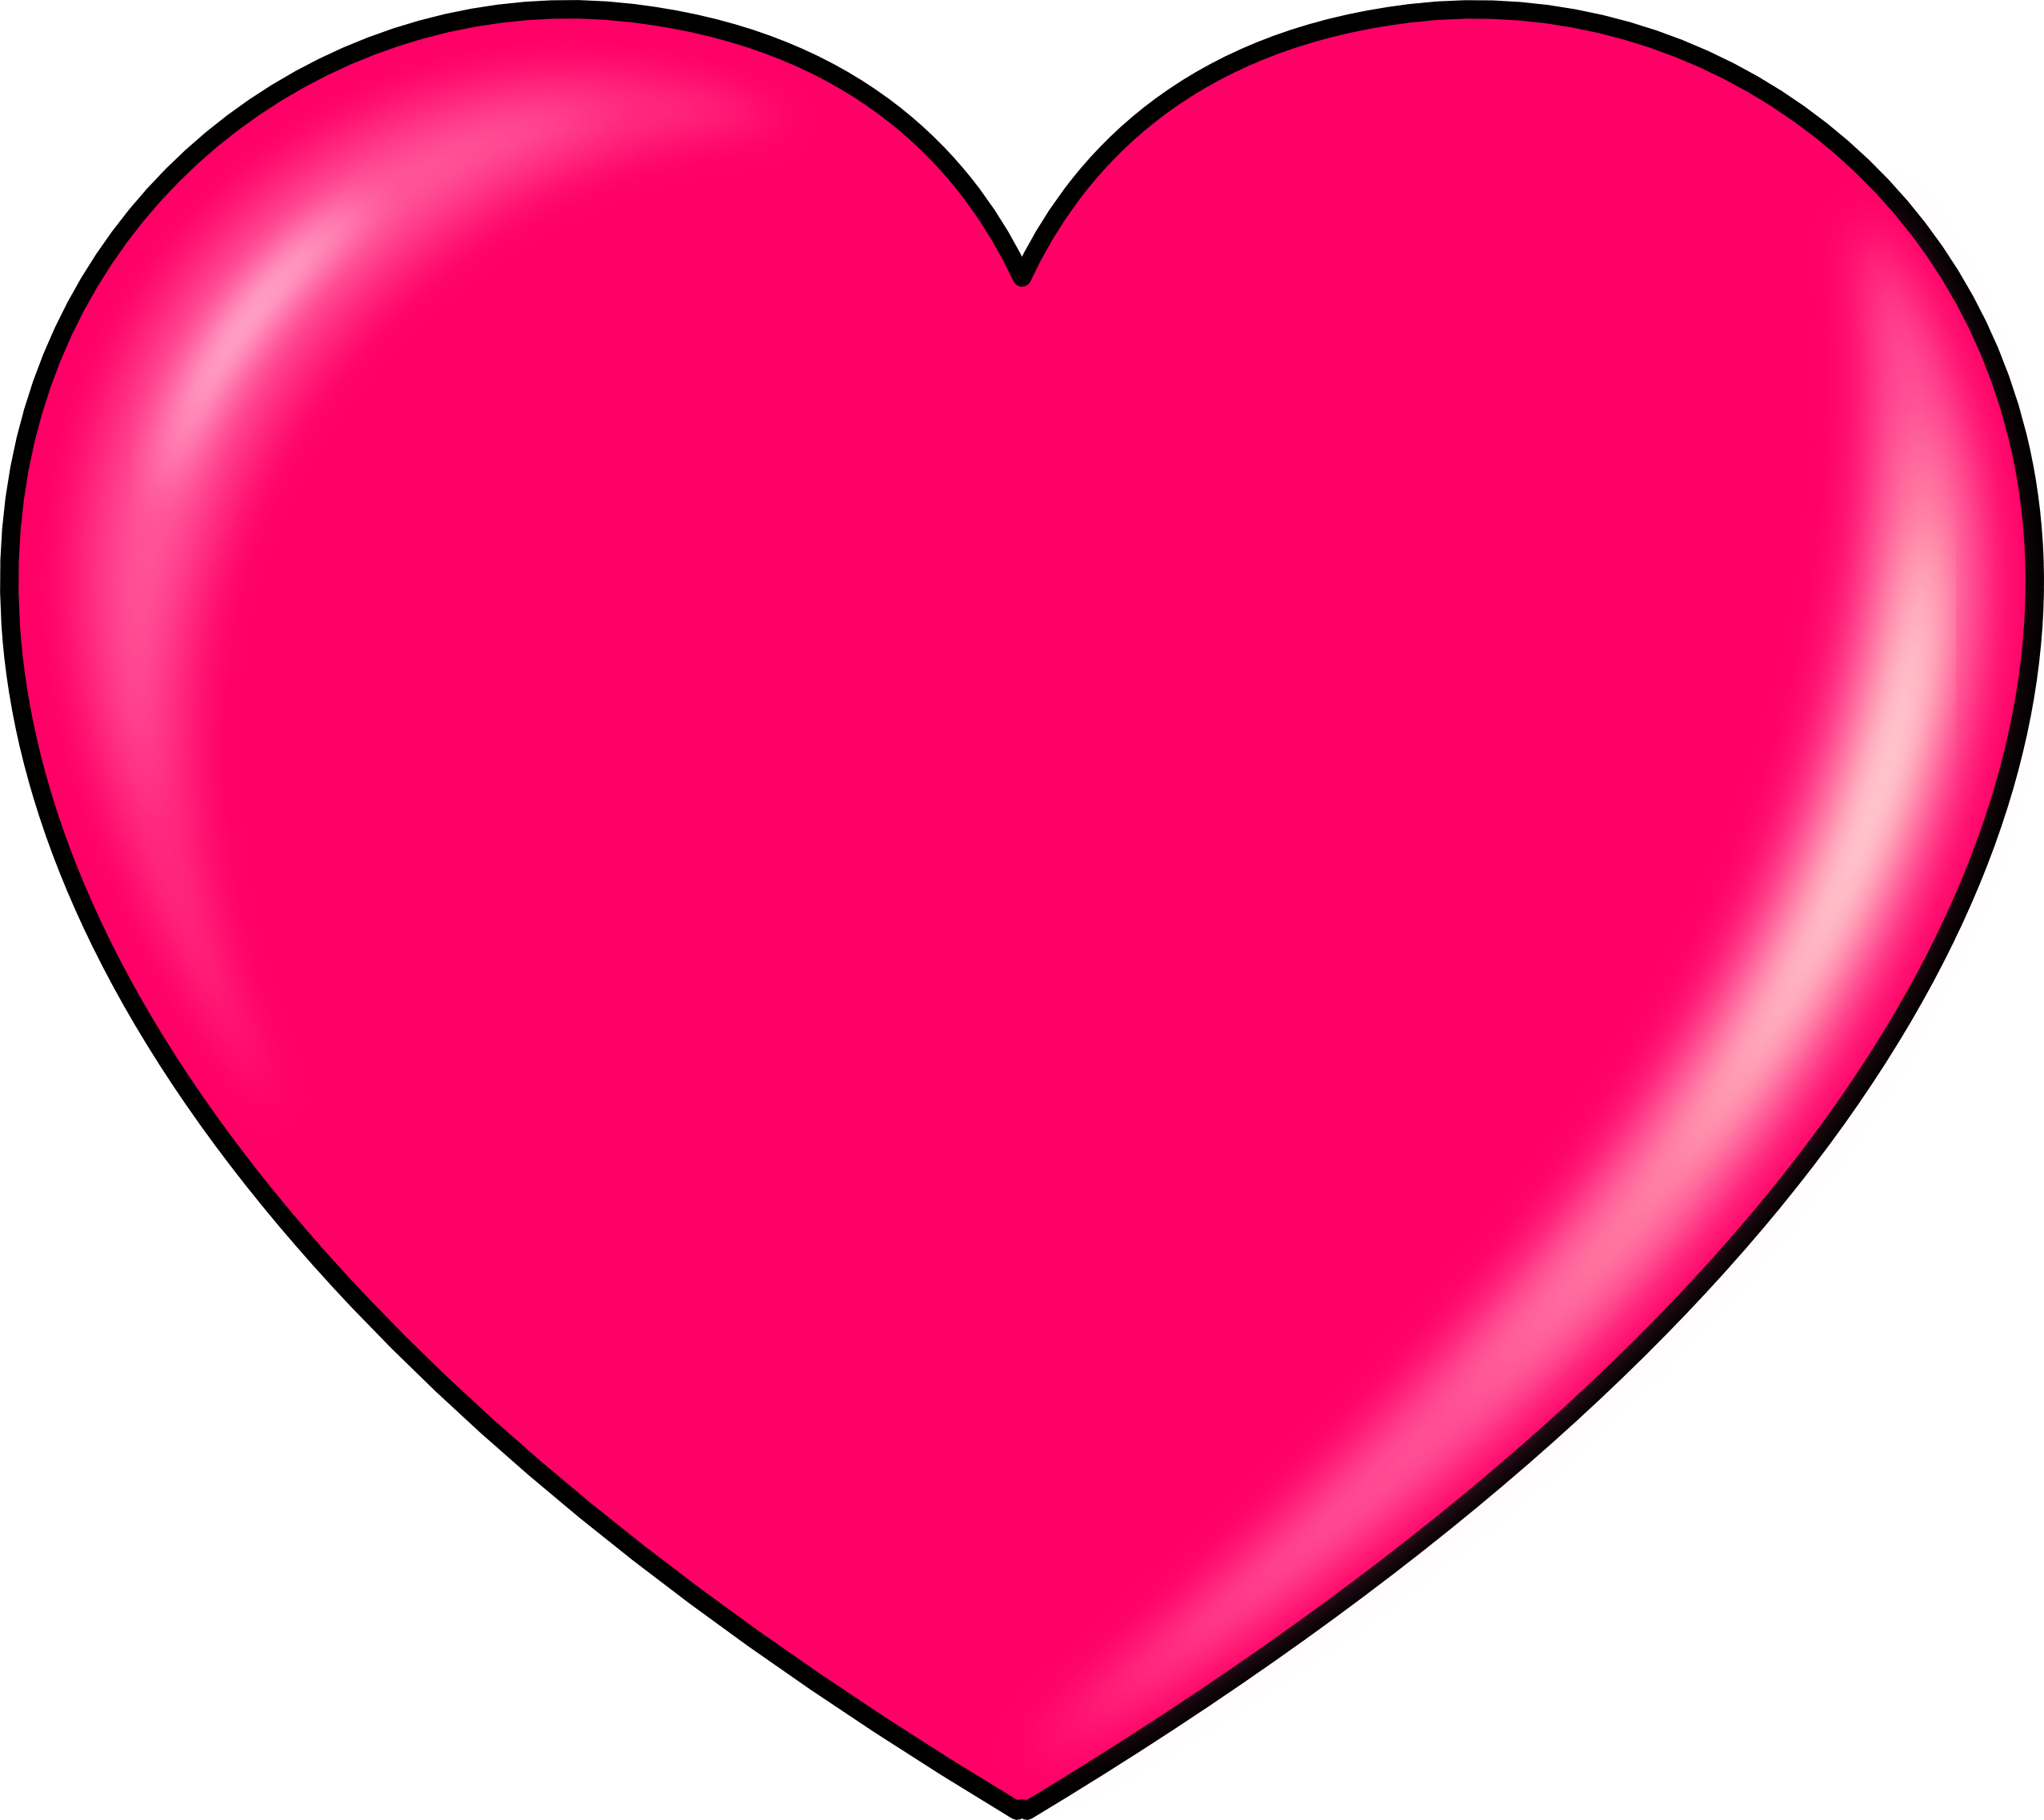 Heart clipart png. Pink transparent stickpng download